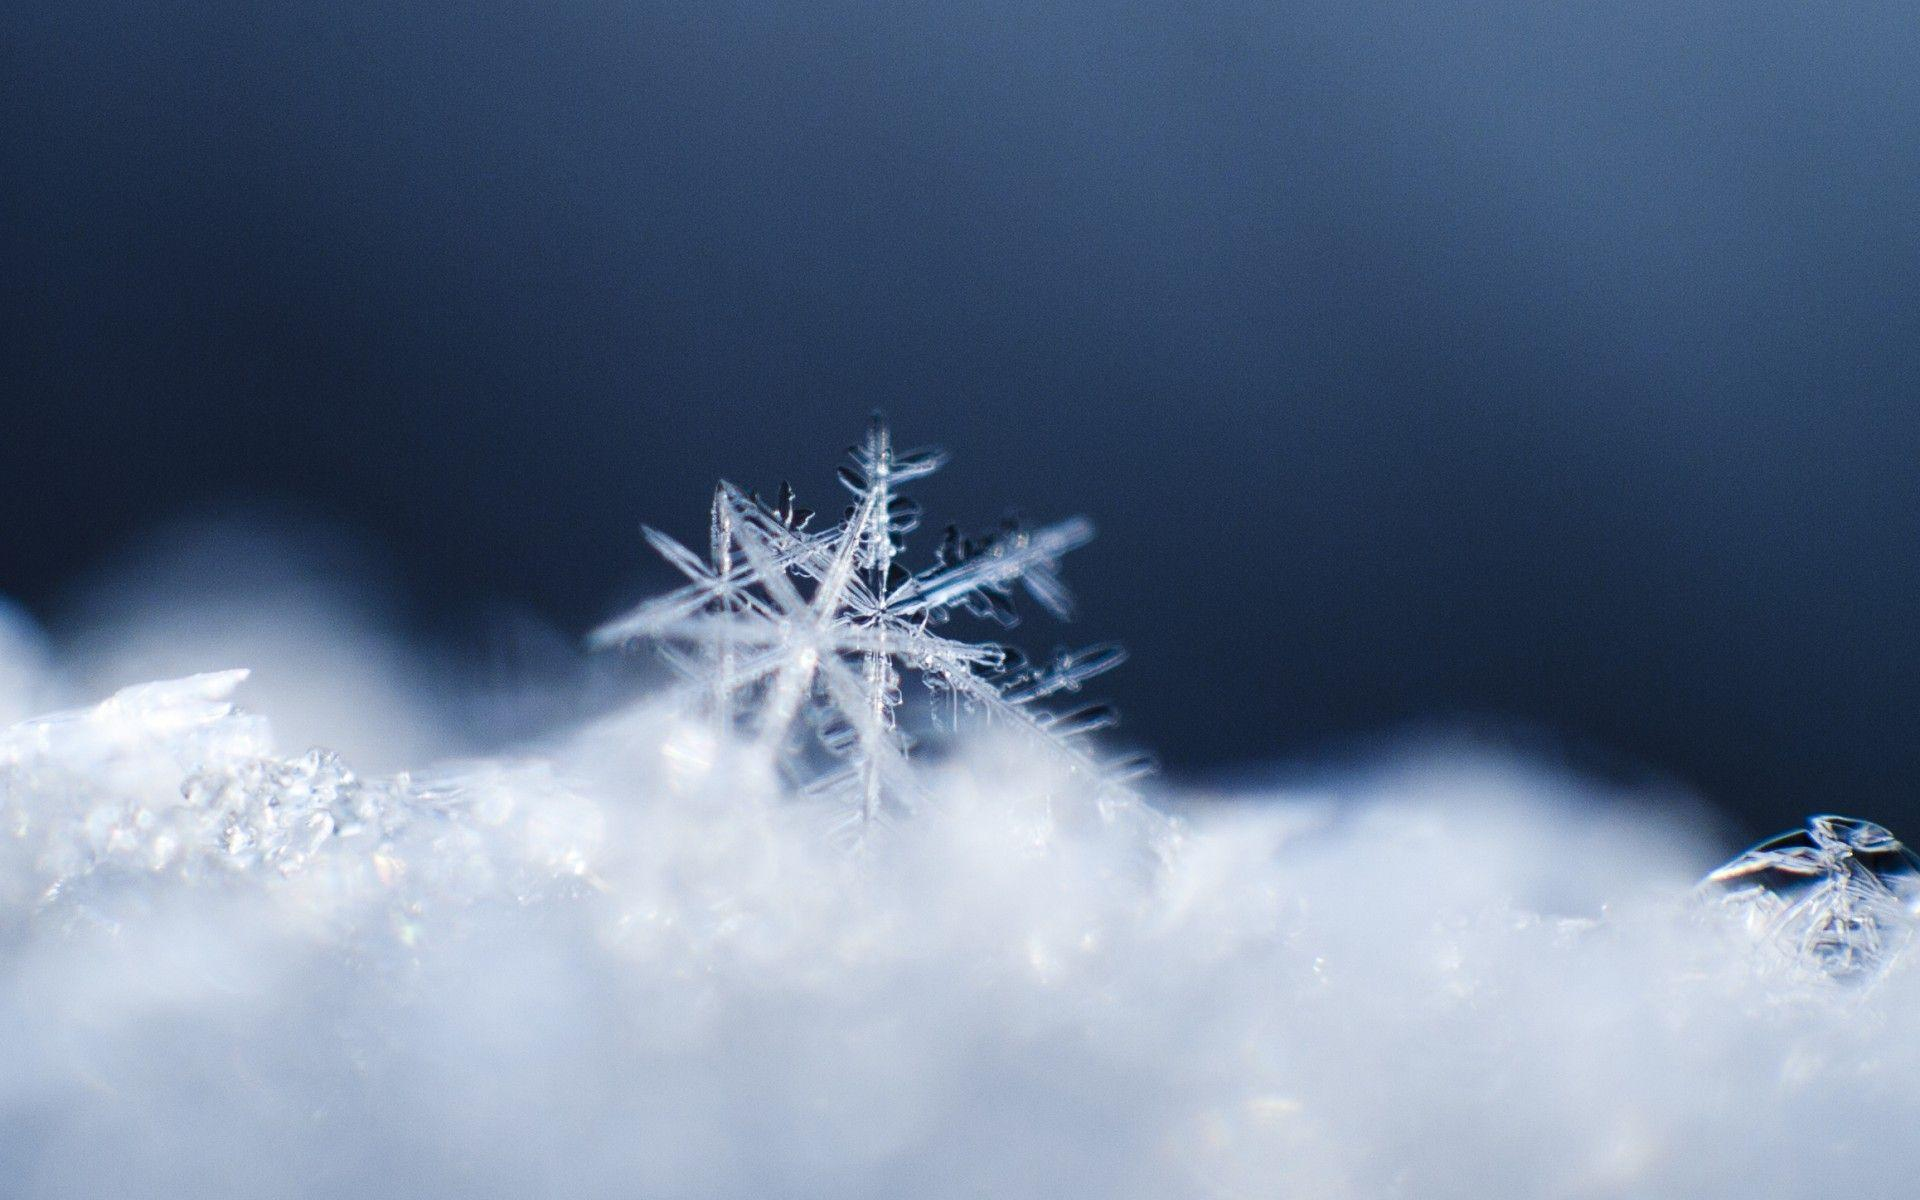 winter snow snowflakes macro / 1920x1200 Wallpapers